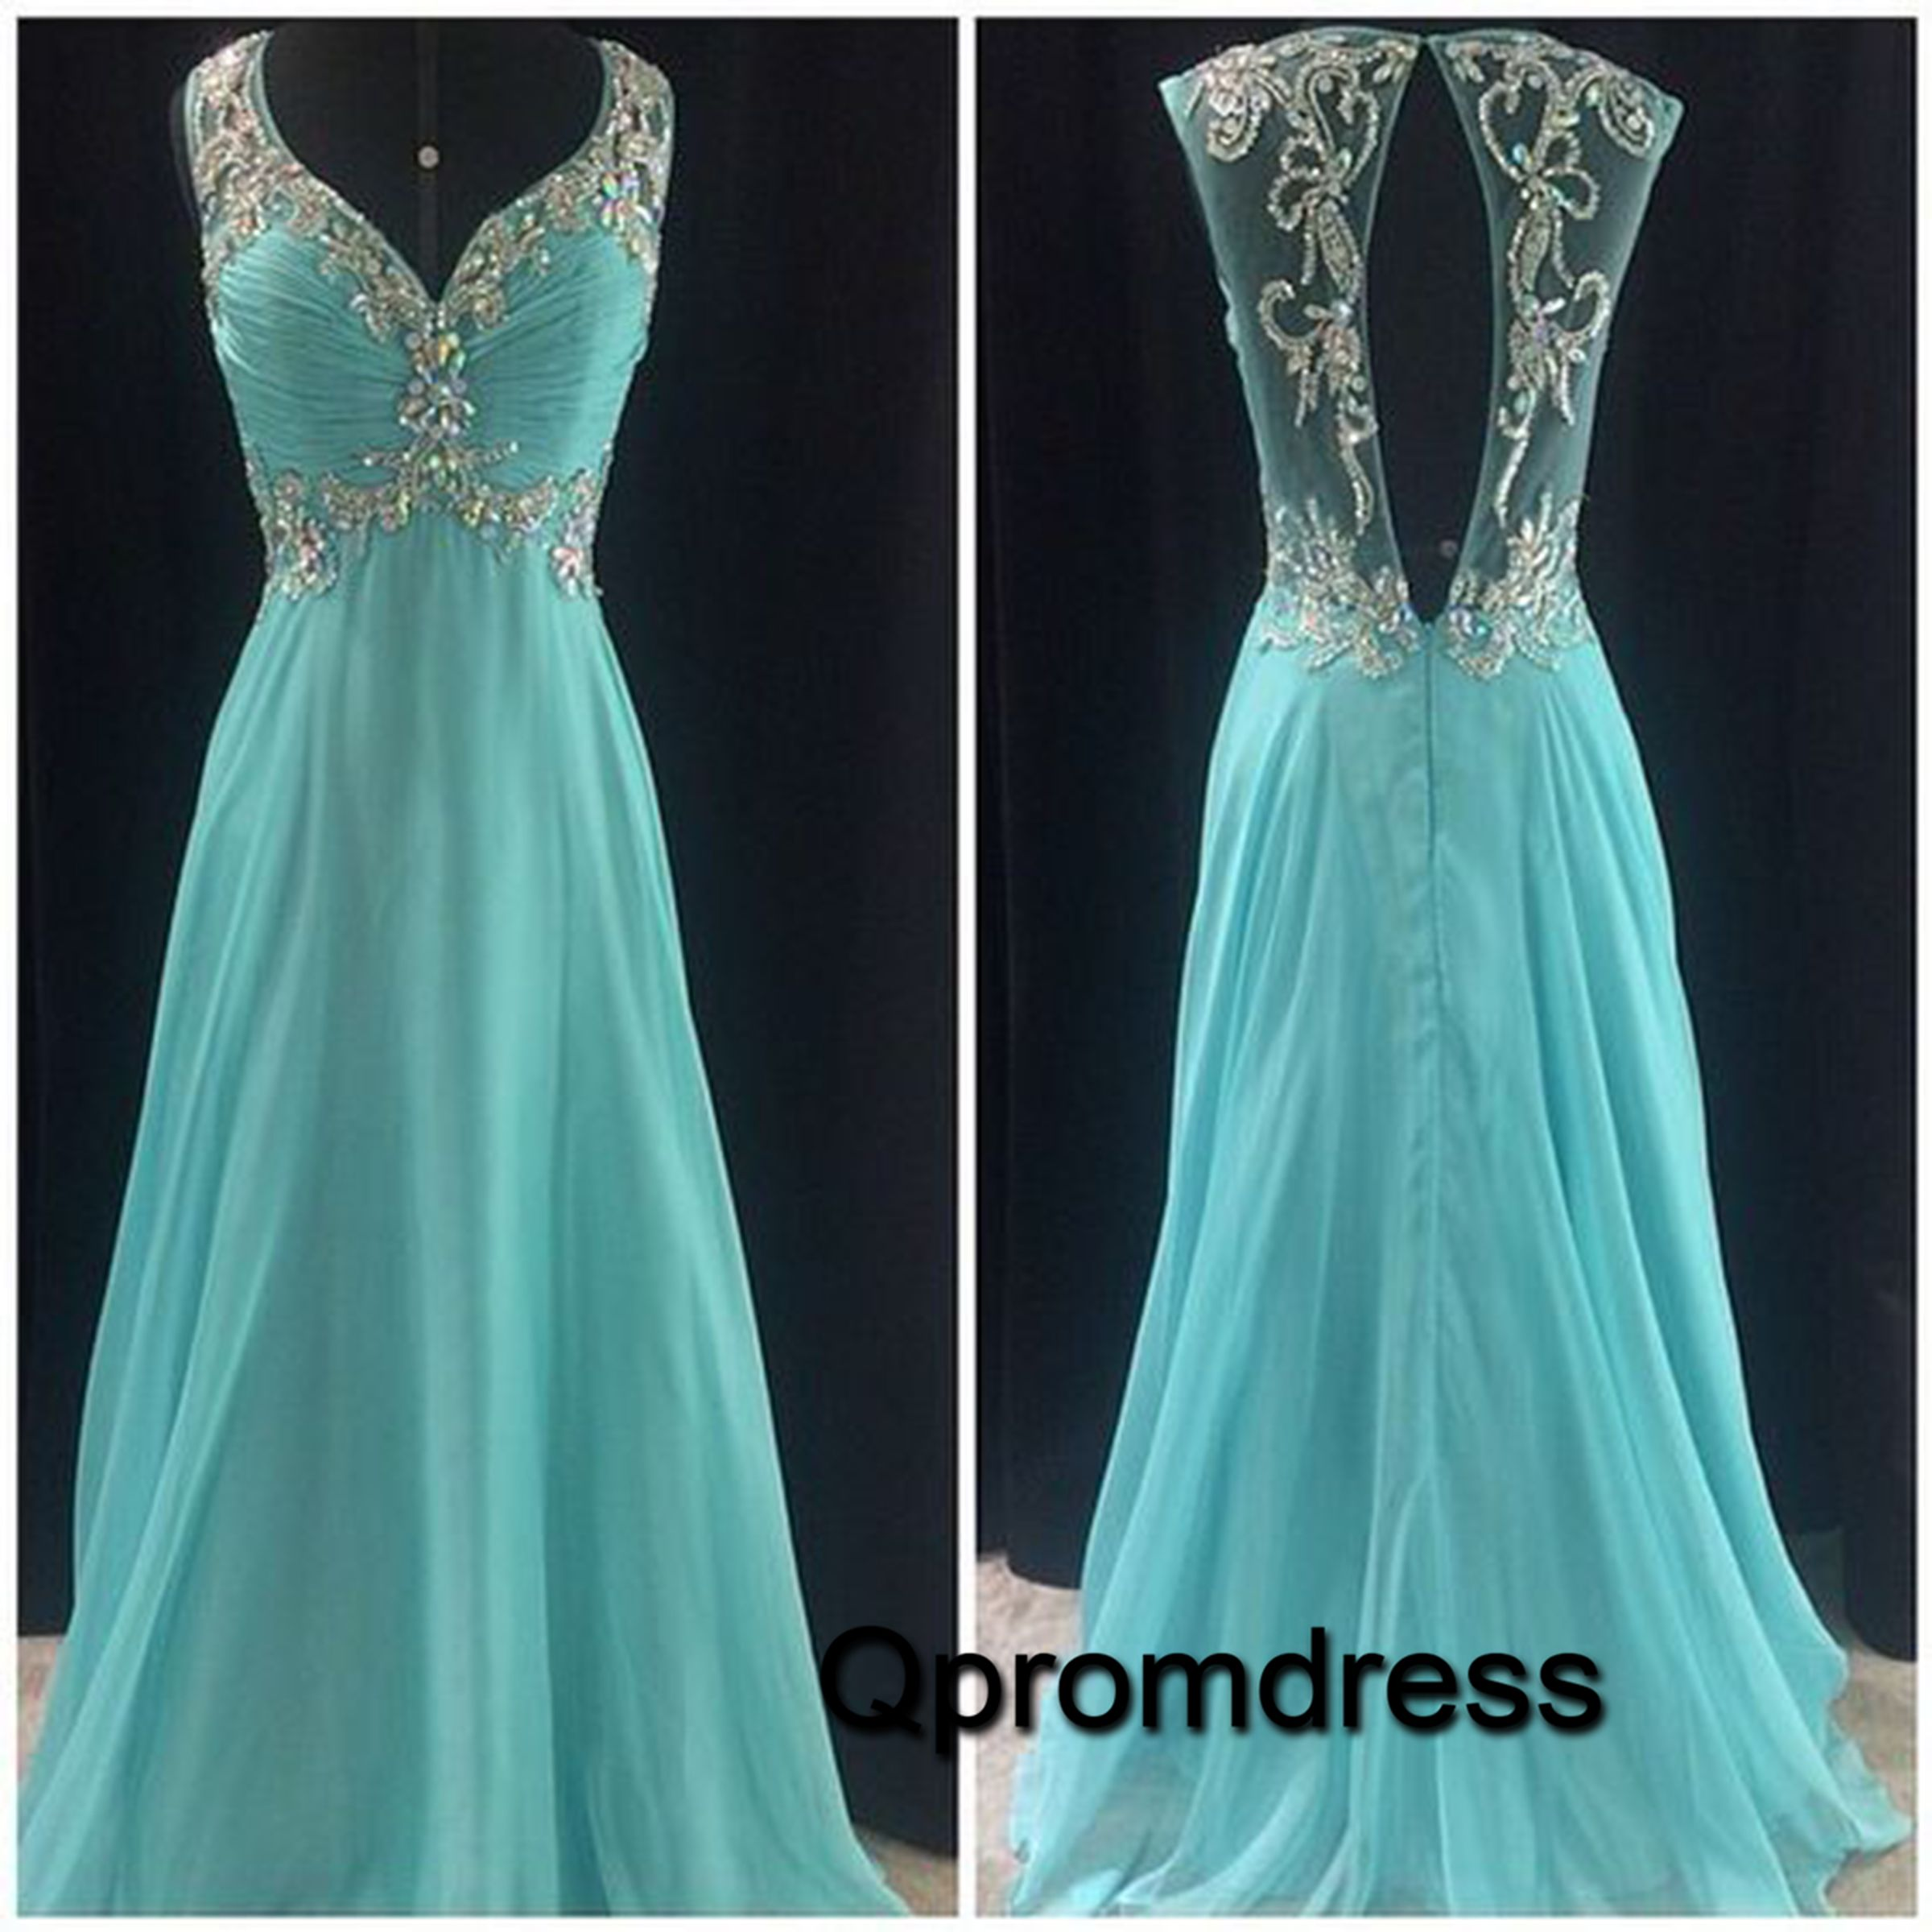 Pretty seethrough back mint green sequins chiffon prom dress for